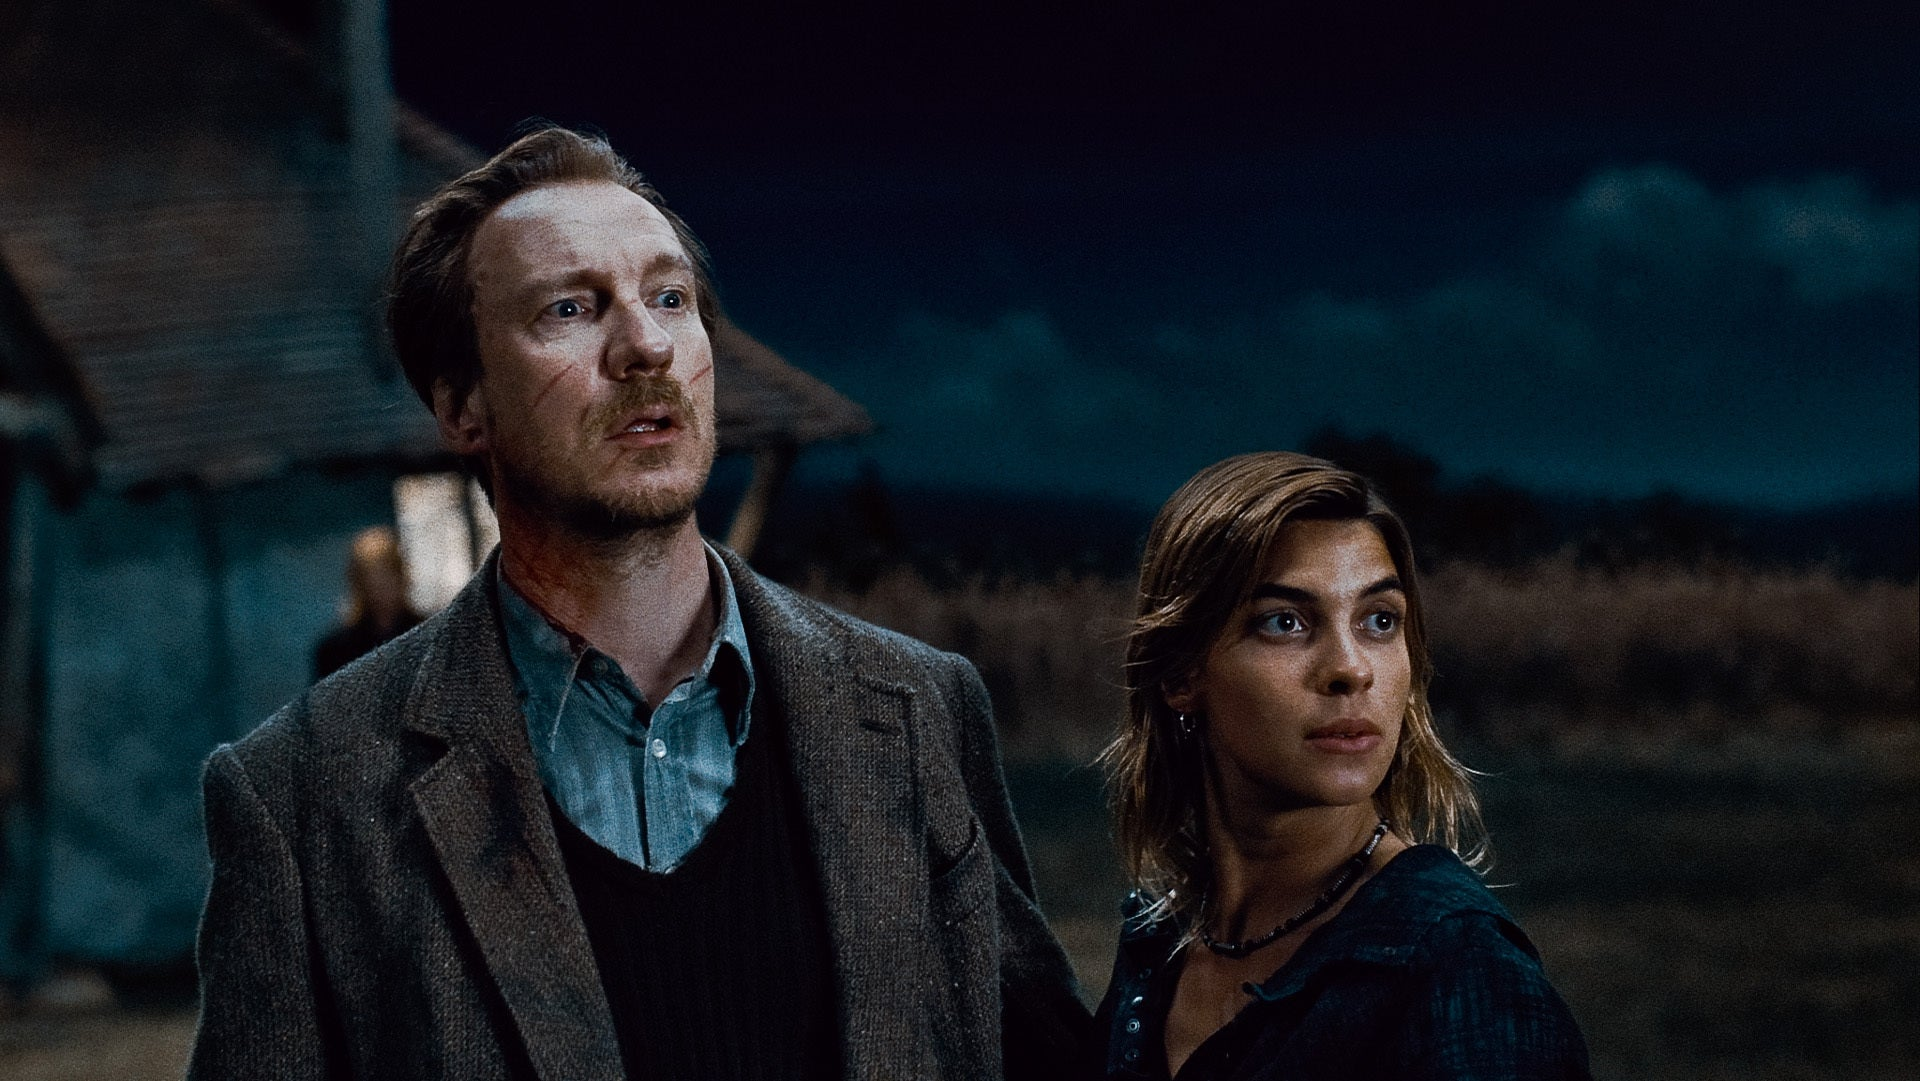 Lupin tonks age difference in dating 1